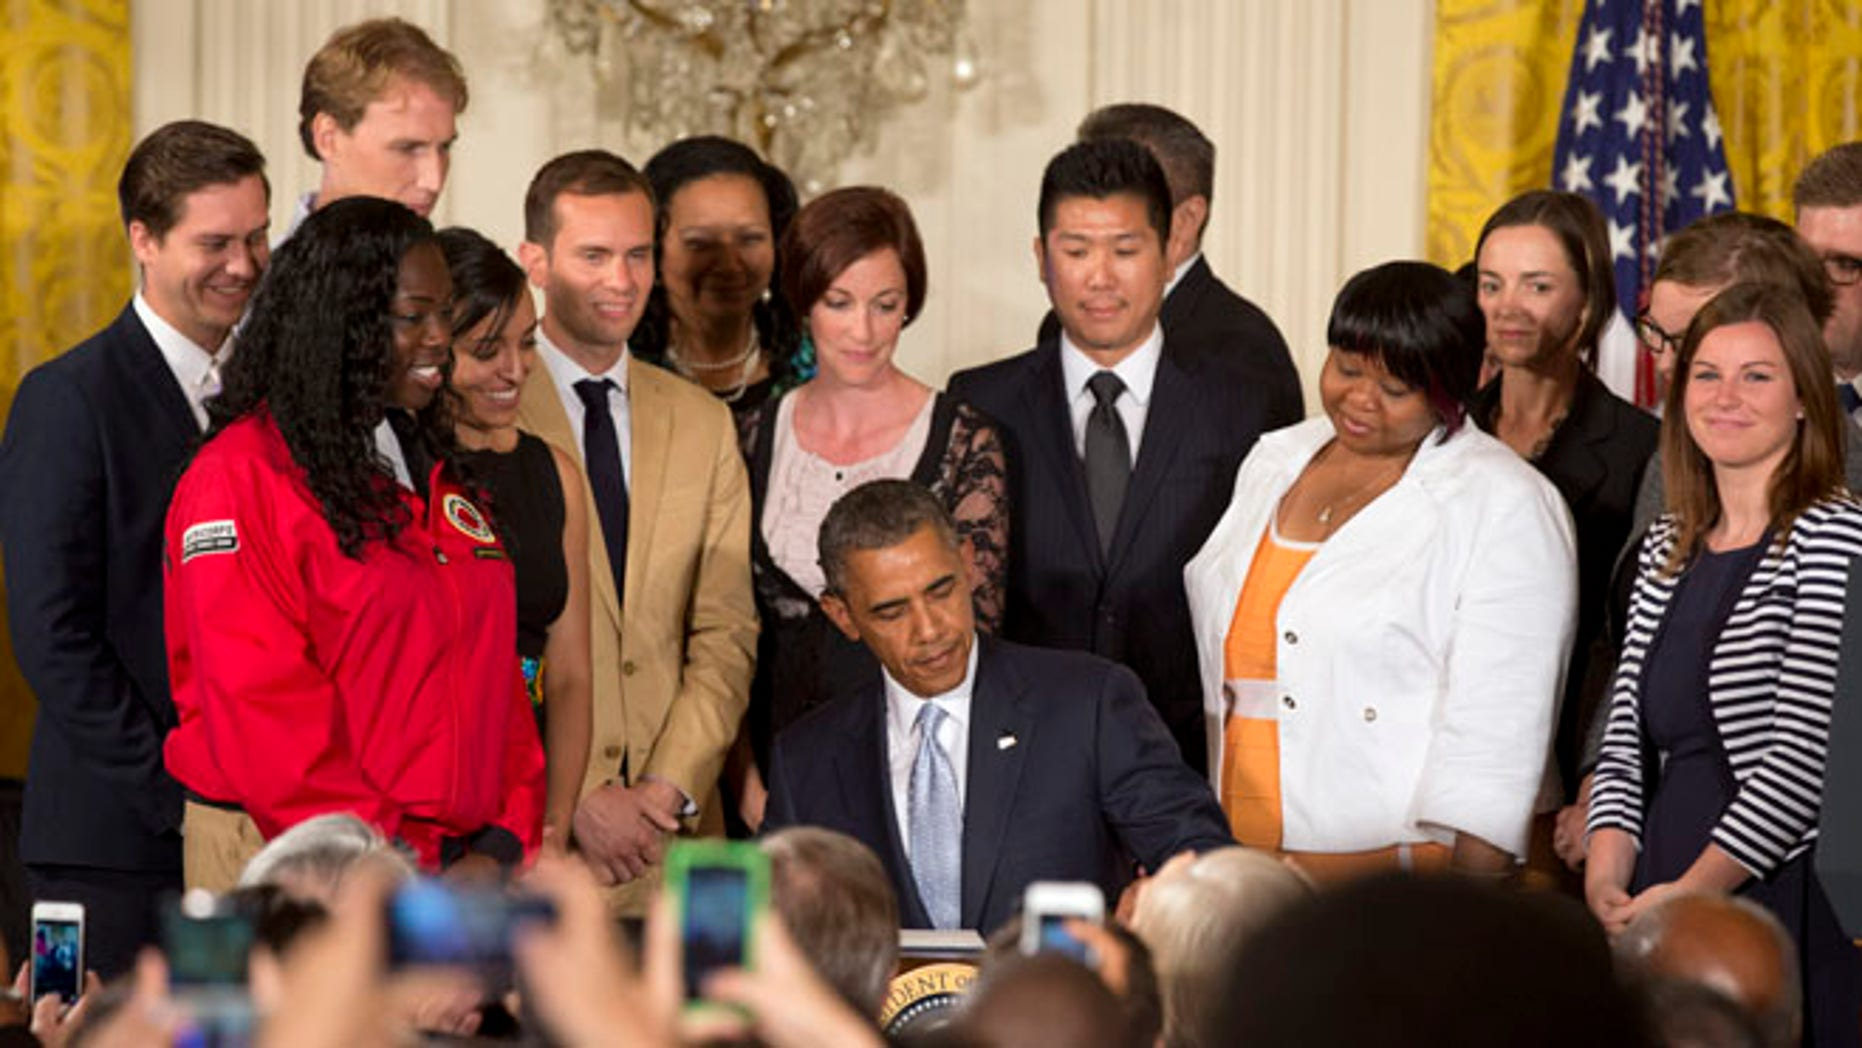 Surrounded by college students, President Barack Obama signs a Presidential Memorandum on reducing the burden of student loan debt, Monday, June 9, 2014, in the East Room of the White House in Washington.